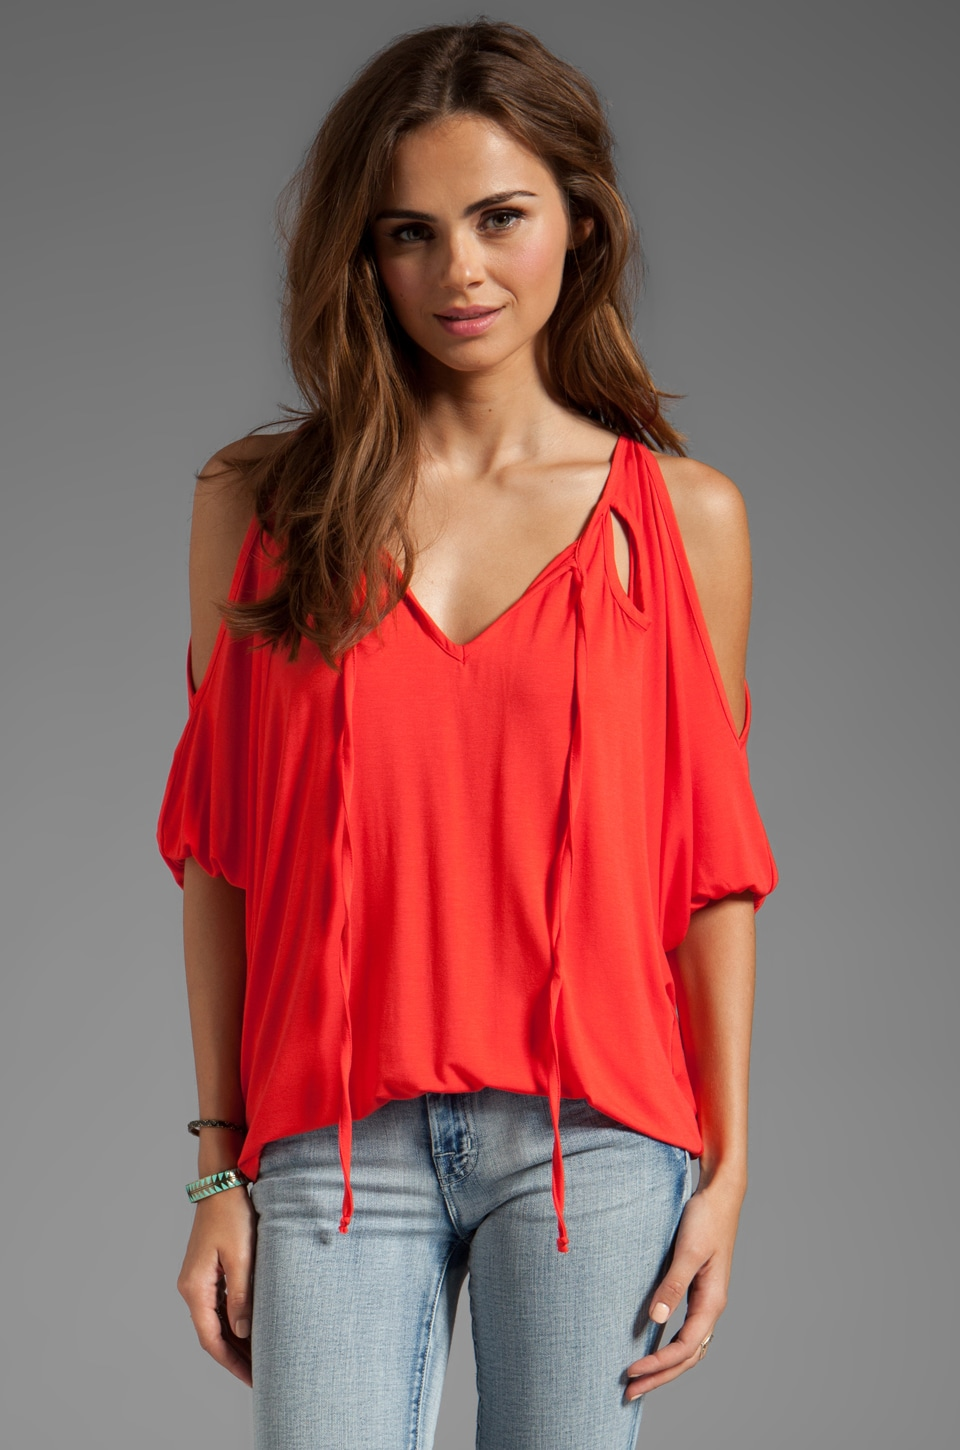 James & Joy Serena Cut Out Top in Dark Orange